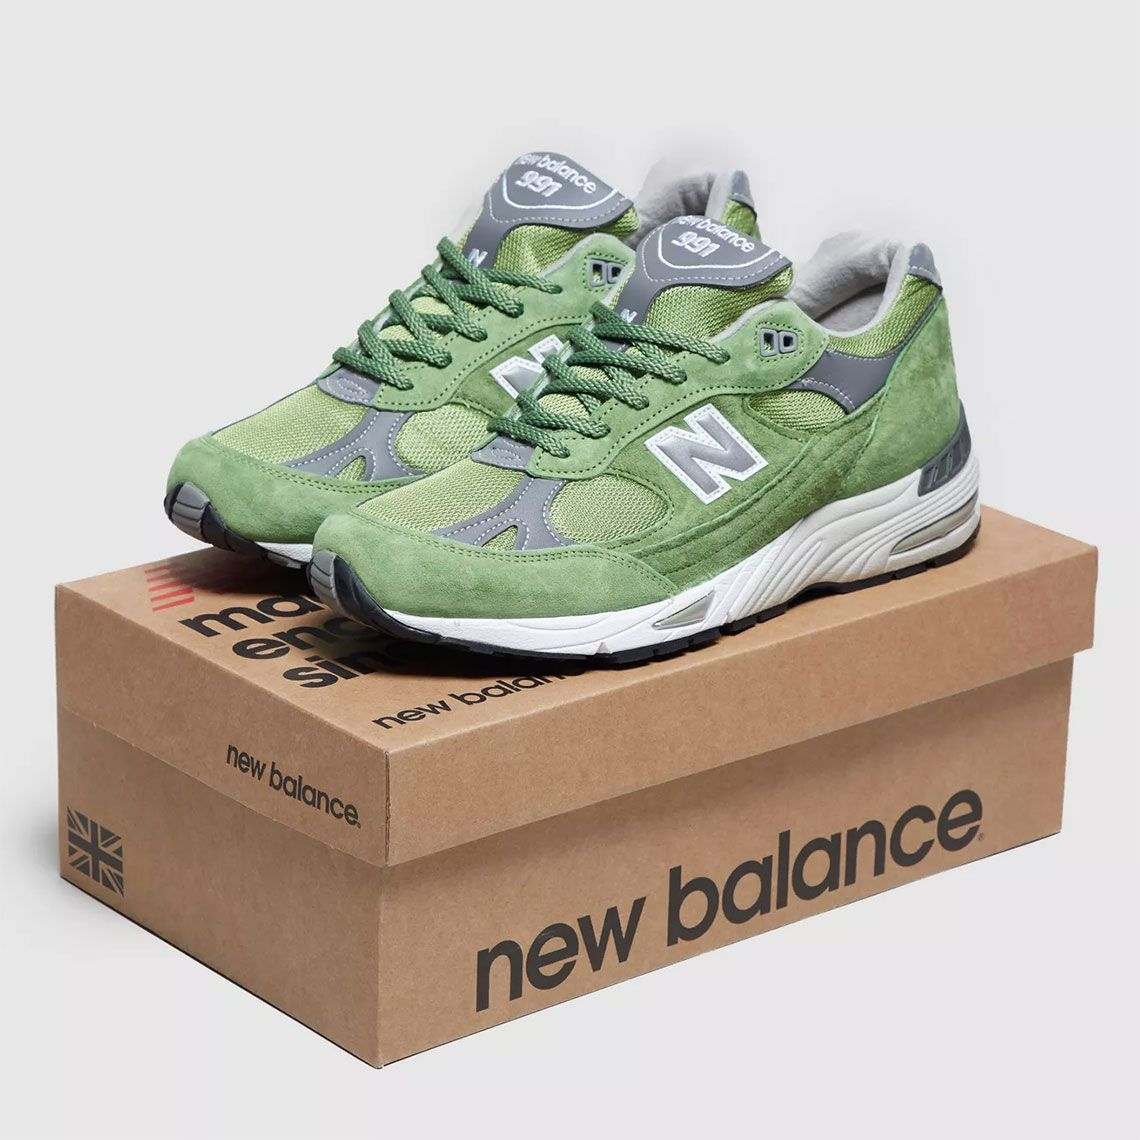 New Balance 991 Green Suede Available Now Sneakernews Com Green Suede Suede New Balance